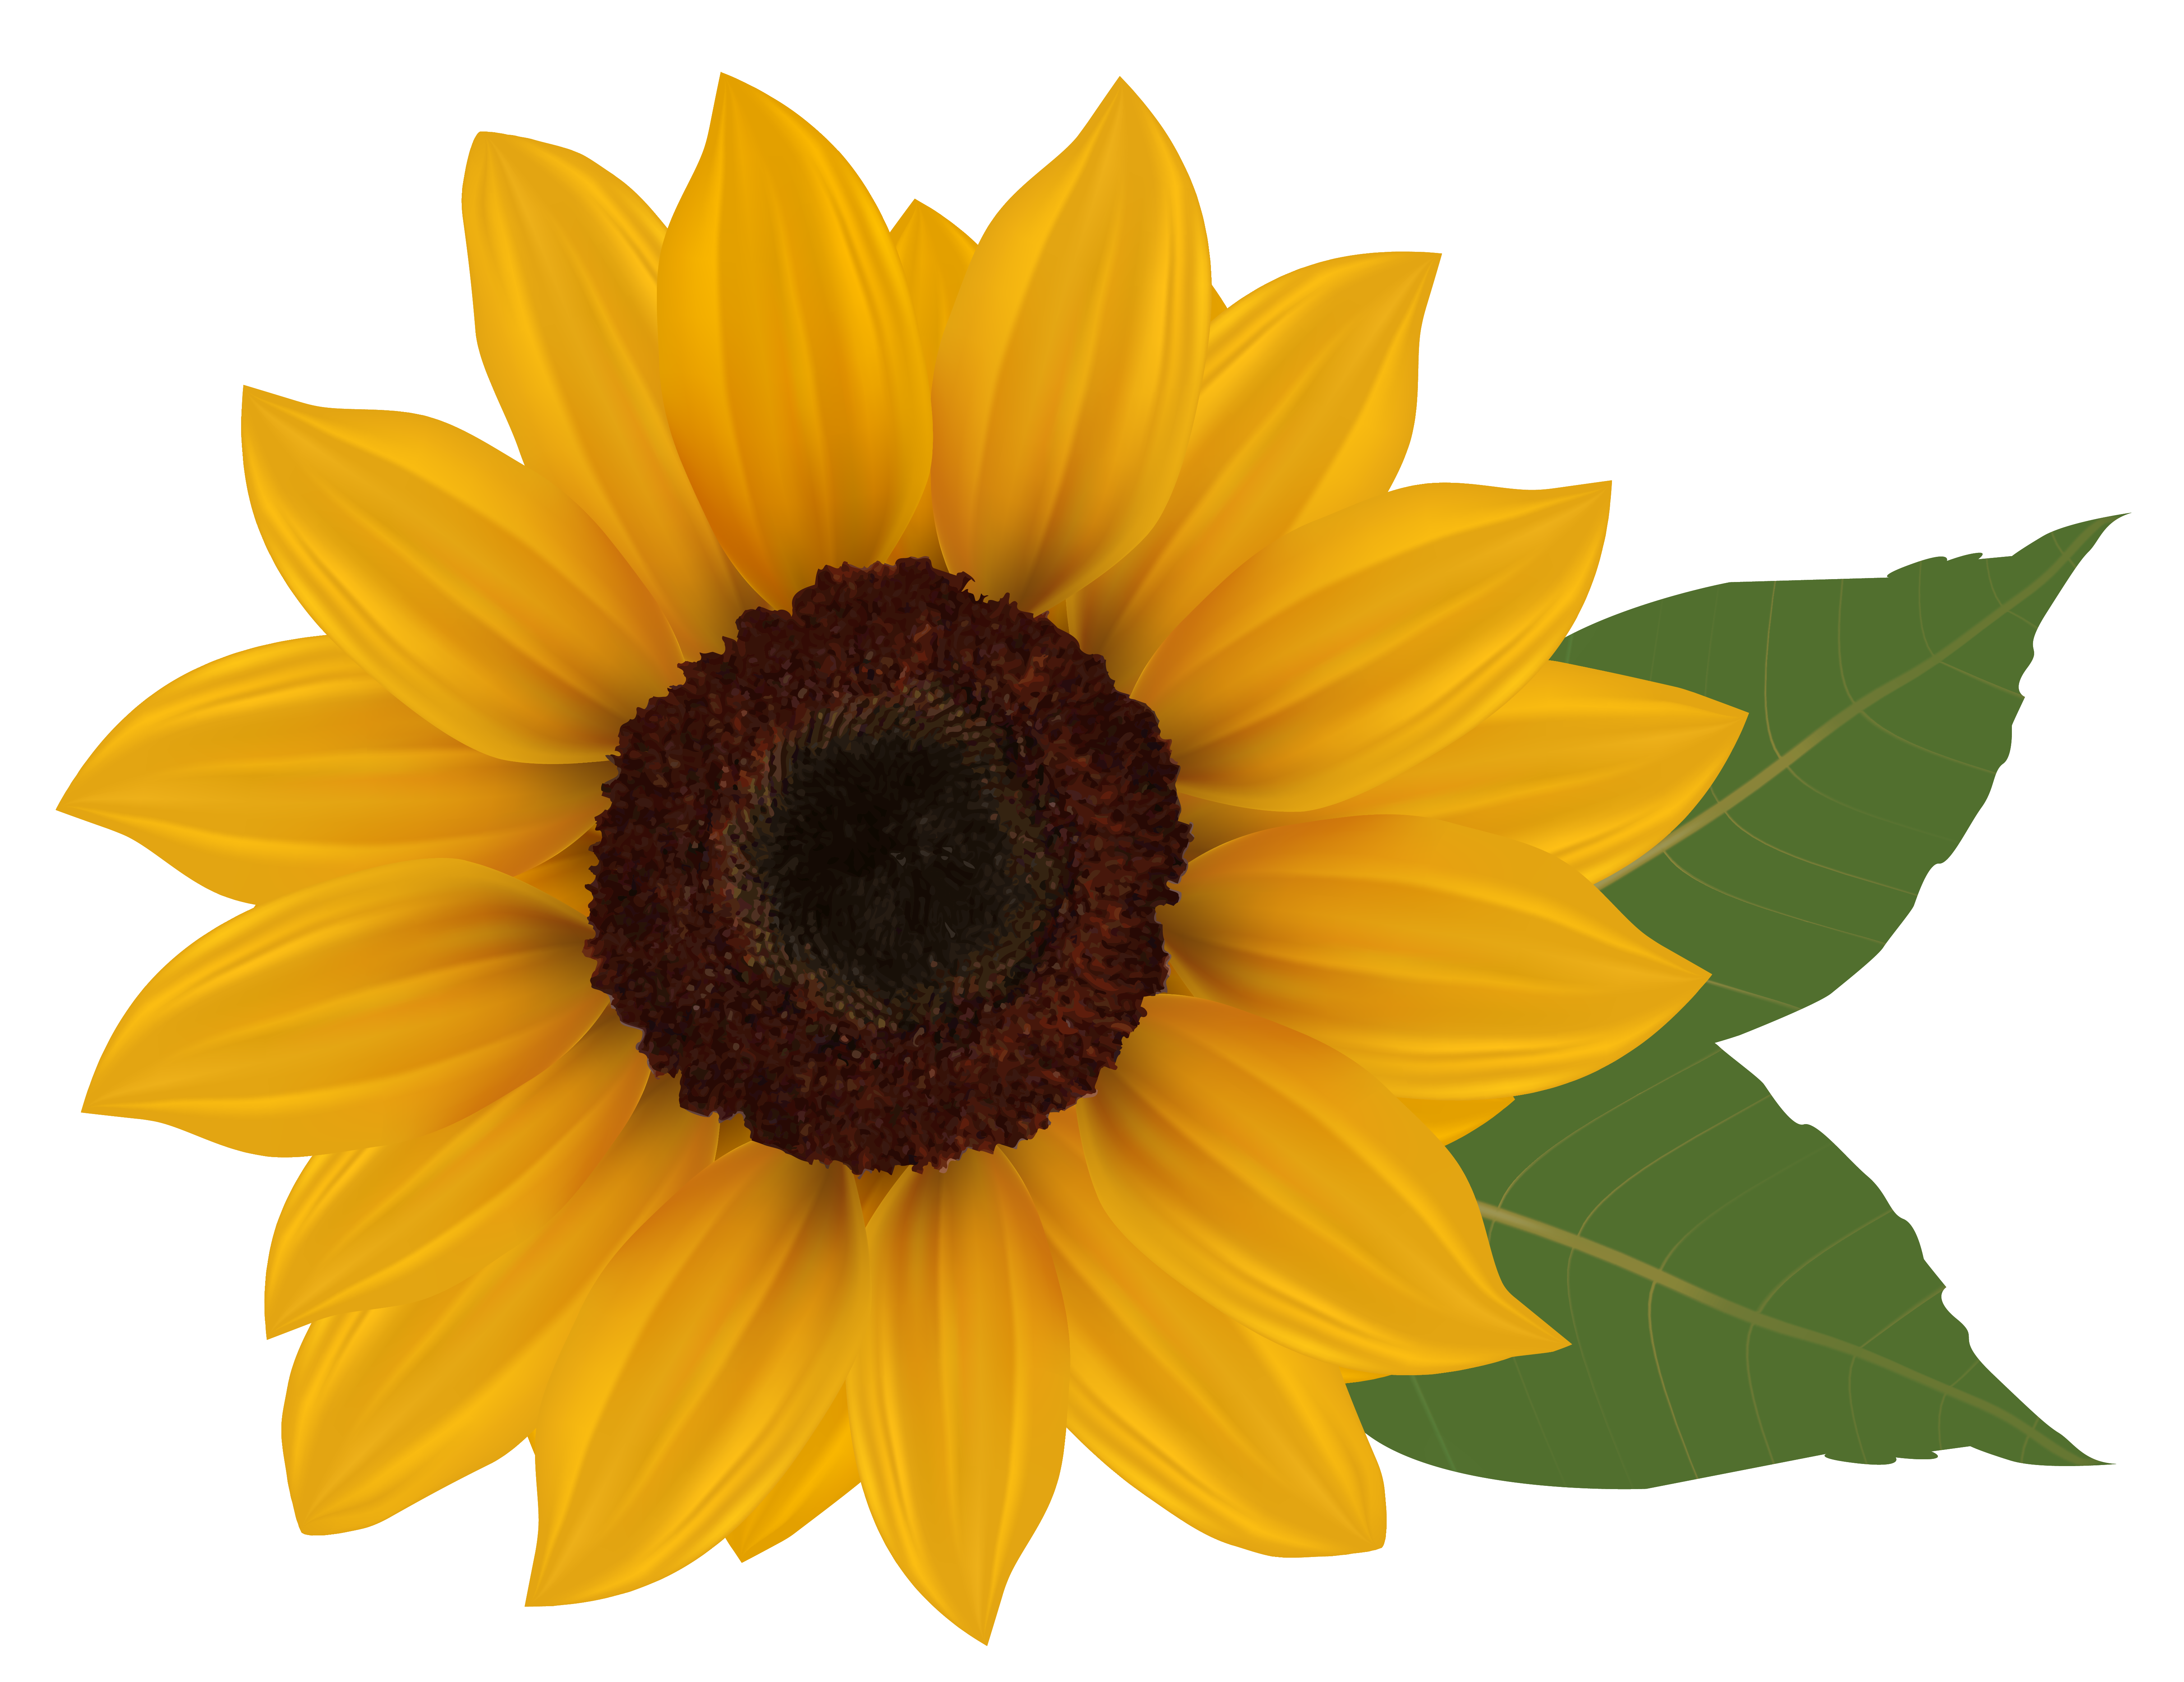 Sun flower clipart svg royalty free library Sunflower PNG Clipart Picture | Gallery Yopriceville - High-Quality ... svg royalty free library